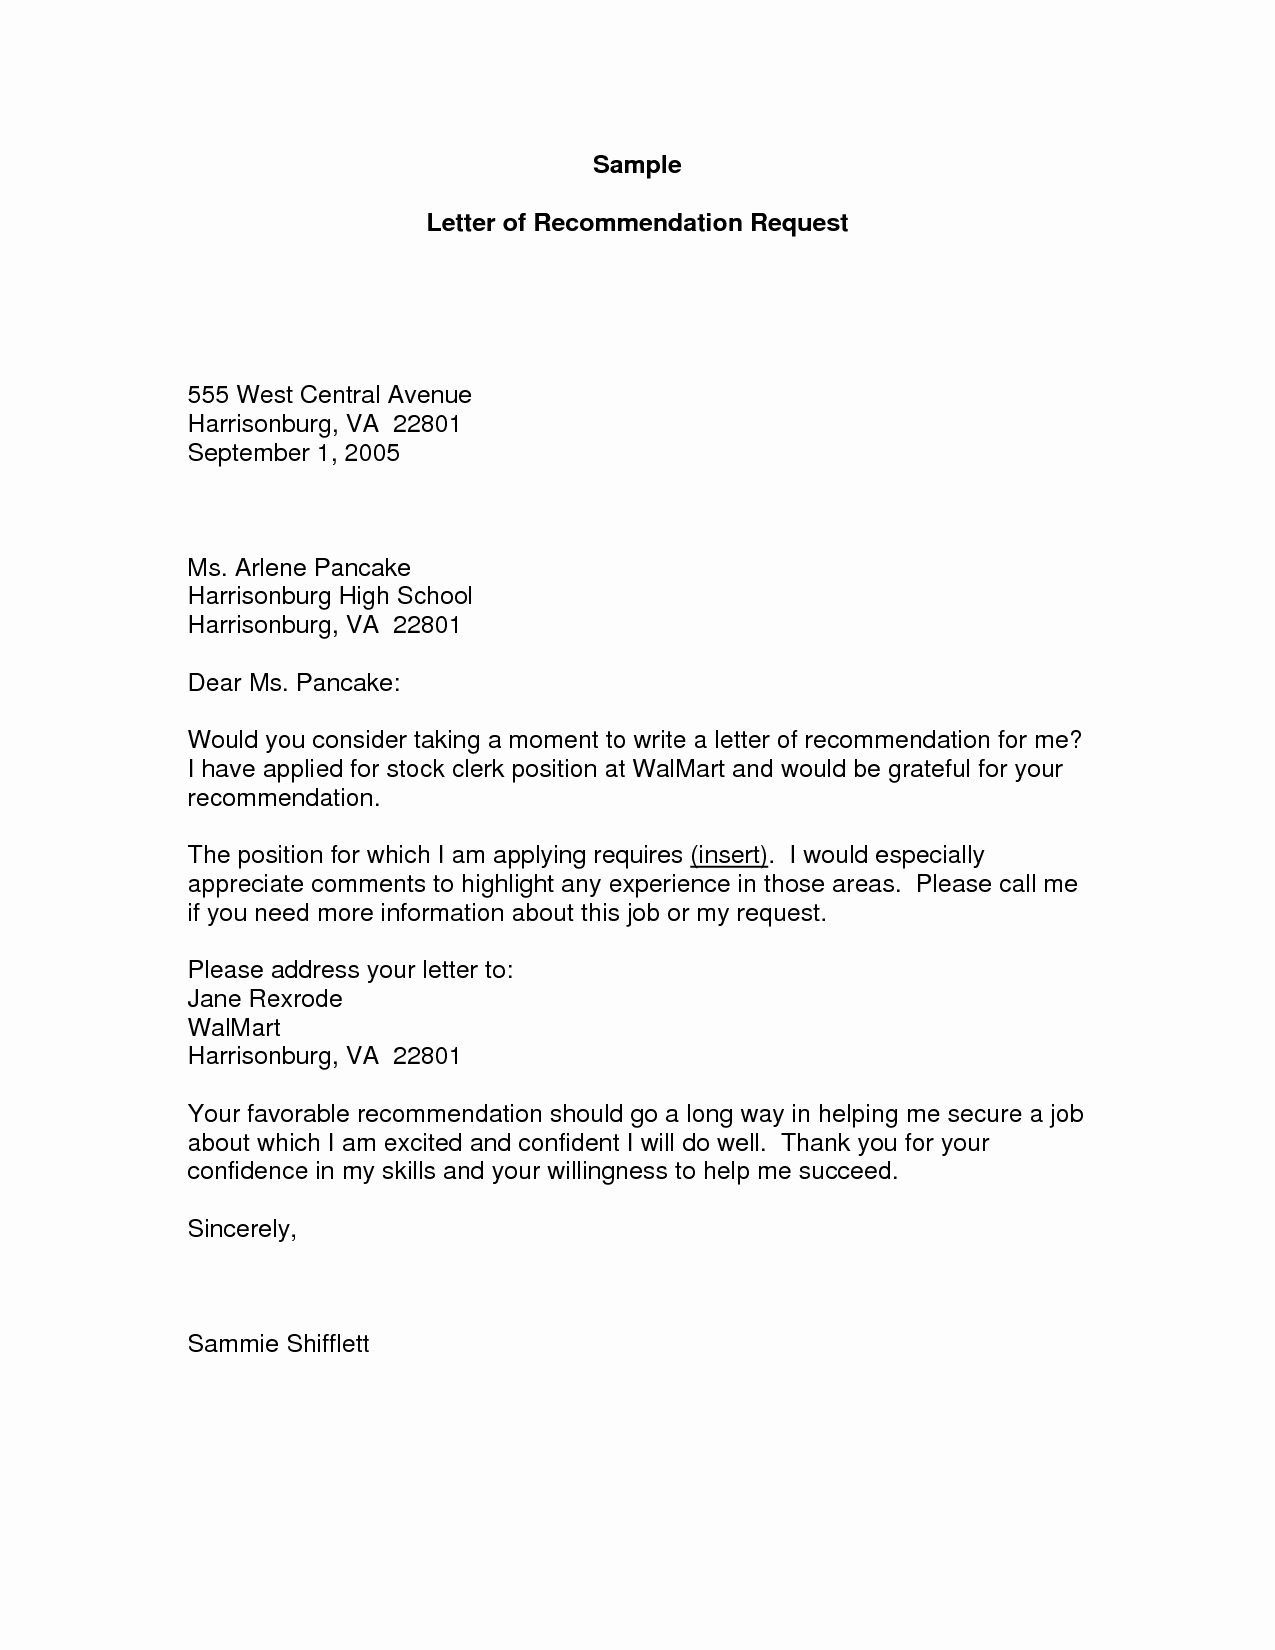 000 Unusual Sample Request For Letter Of Recommendation High Resolution  From Previou Employer NursingFull